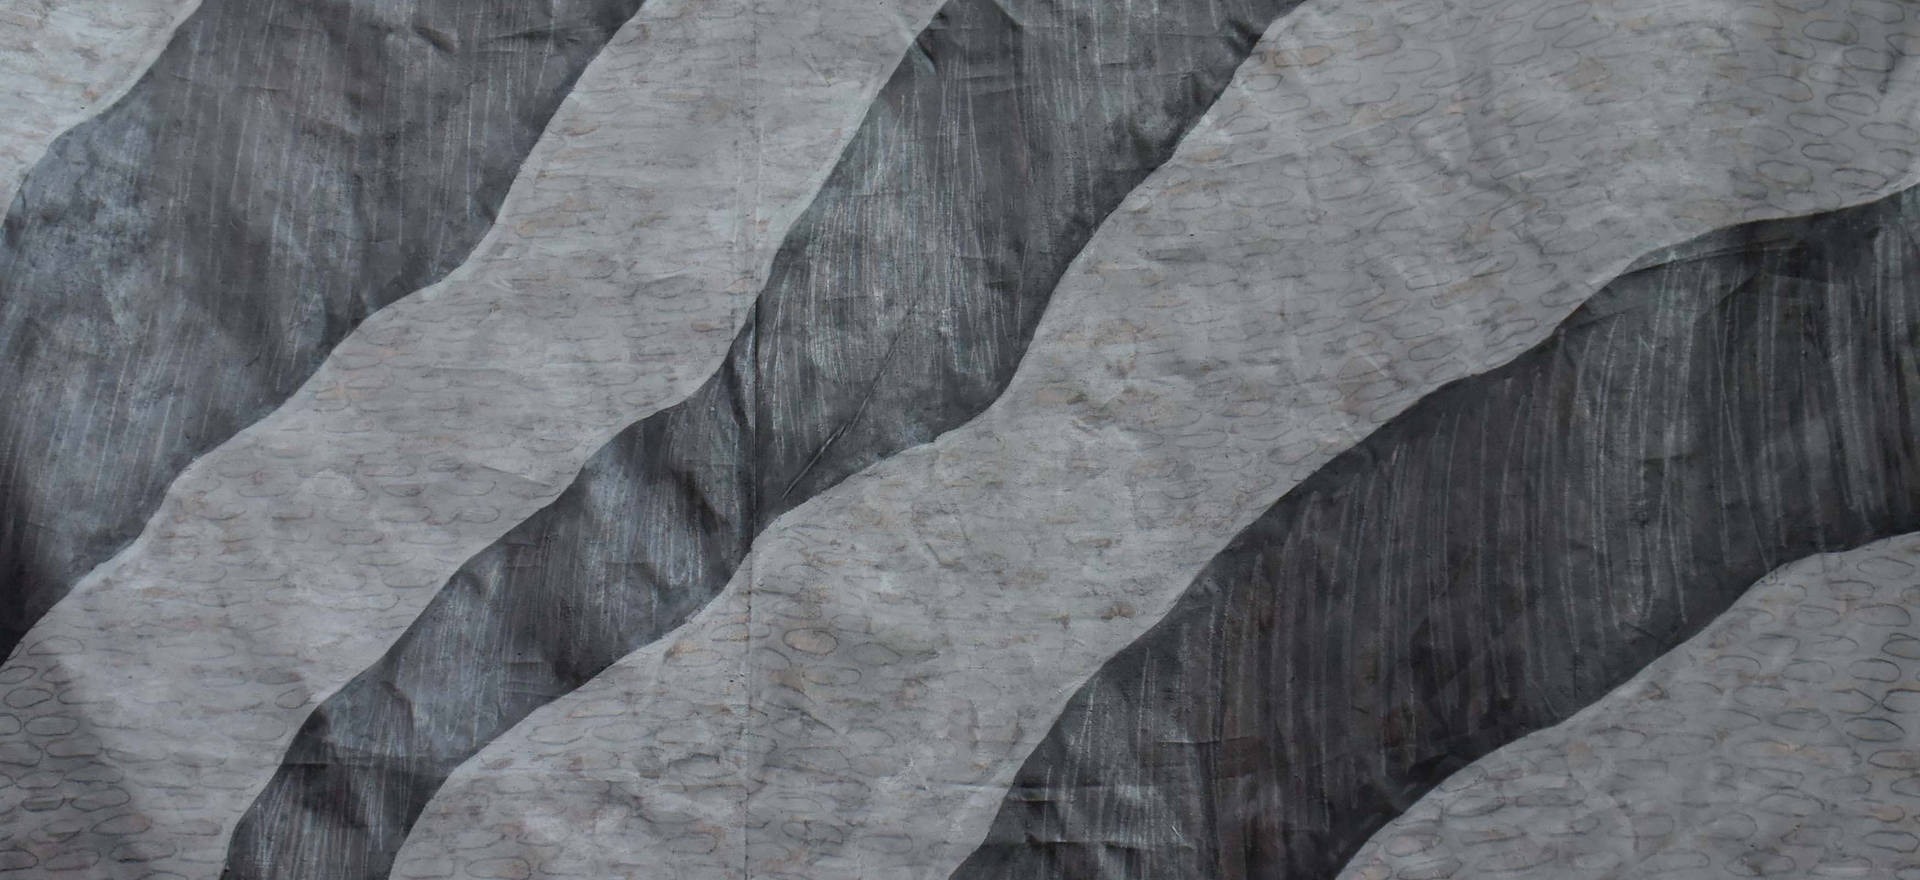 Inverse orography Textile painting, gesso, graphite and fixative. 102.36 x 64.17 inches. 260 x 163 cm.